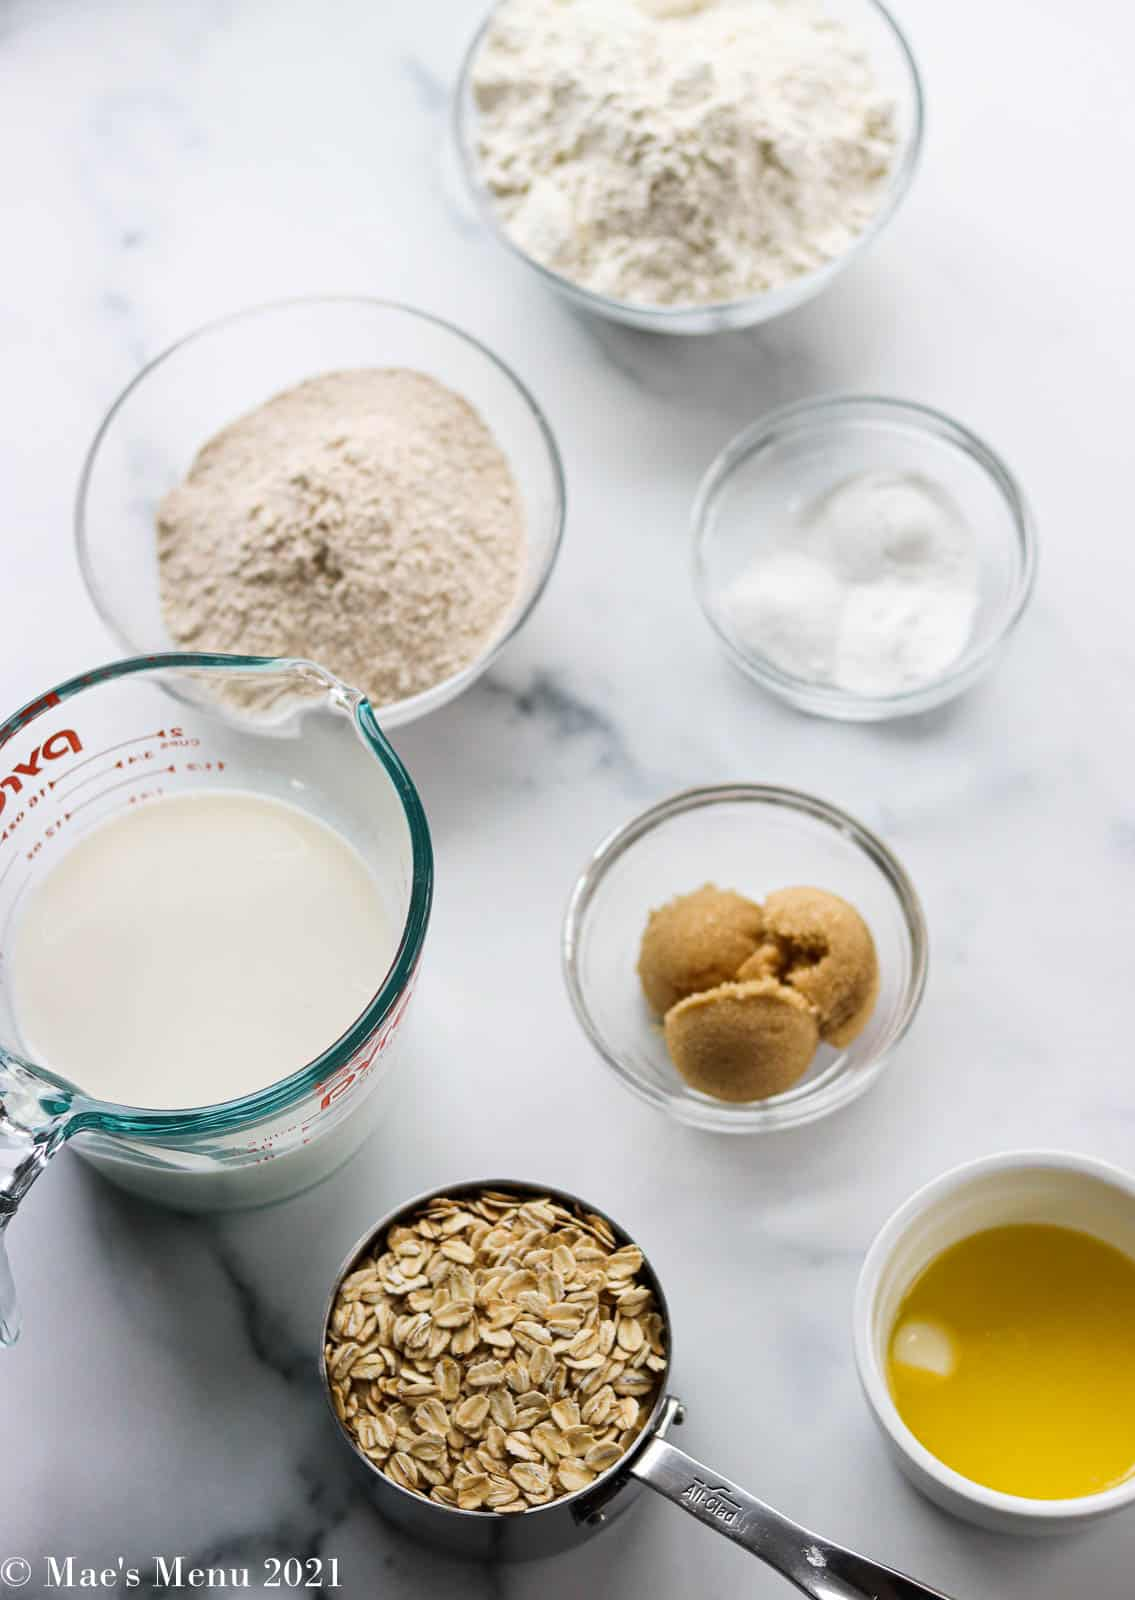 An overhead shot of the ingredients for oatmeal bread